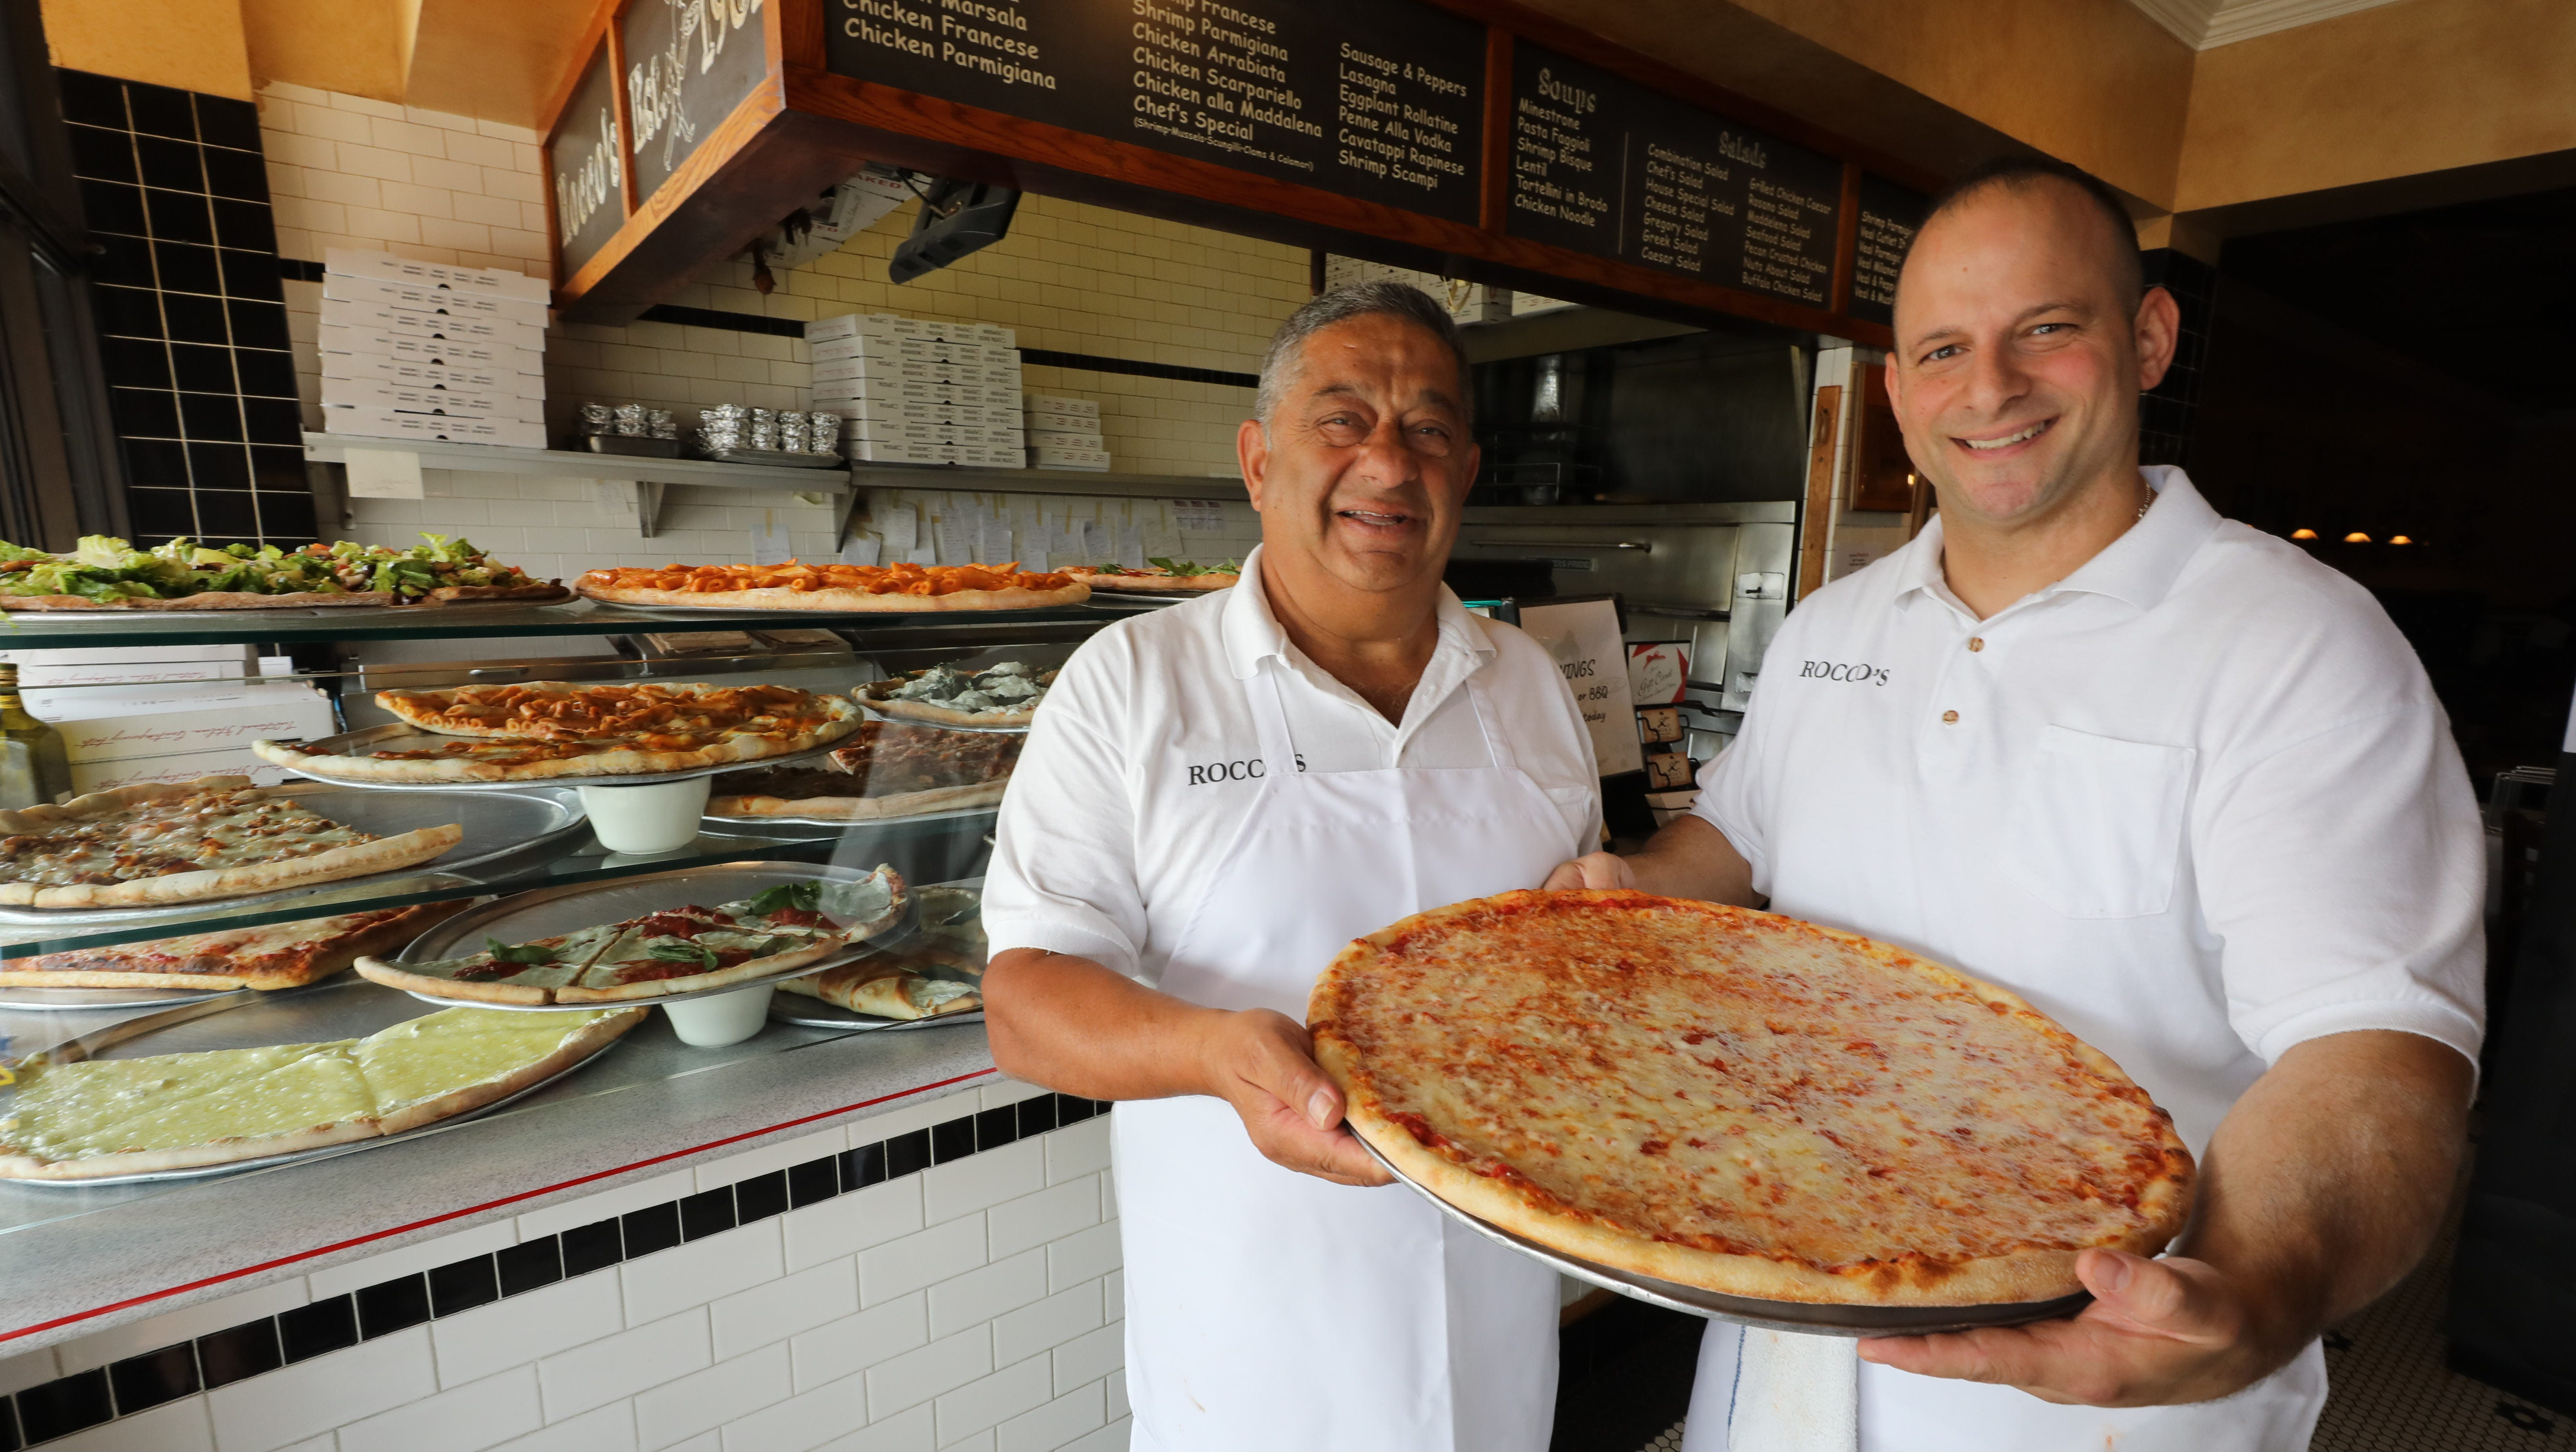 And the best pizza in Rockland is ...